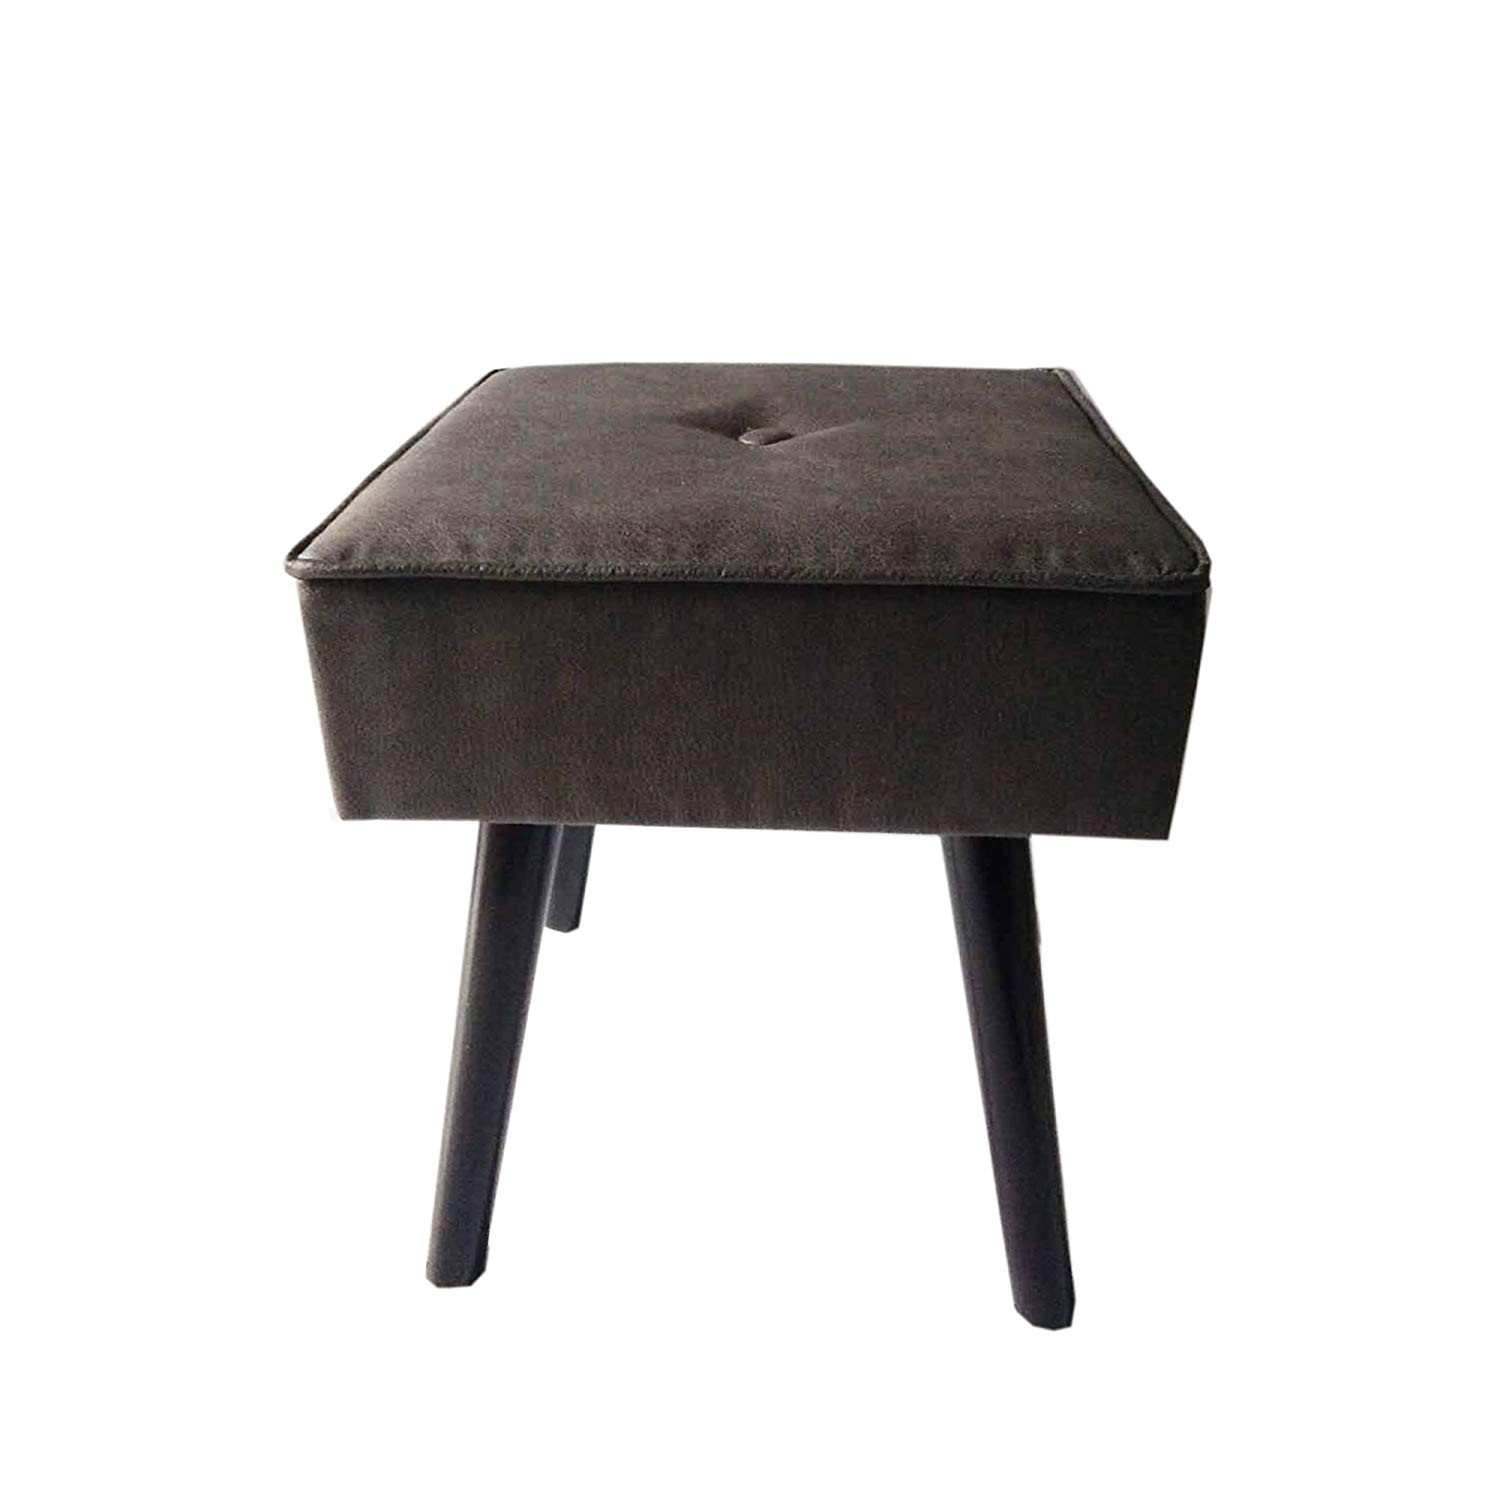 Design Guild 1230222-SM Robin Foot Stool With Wood Legs, Smoke Blue